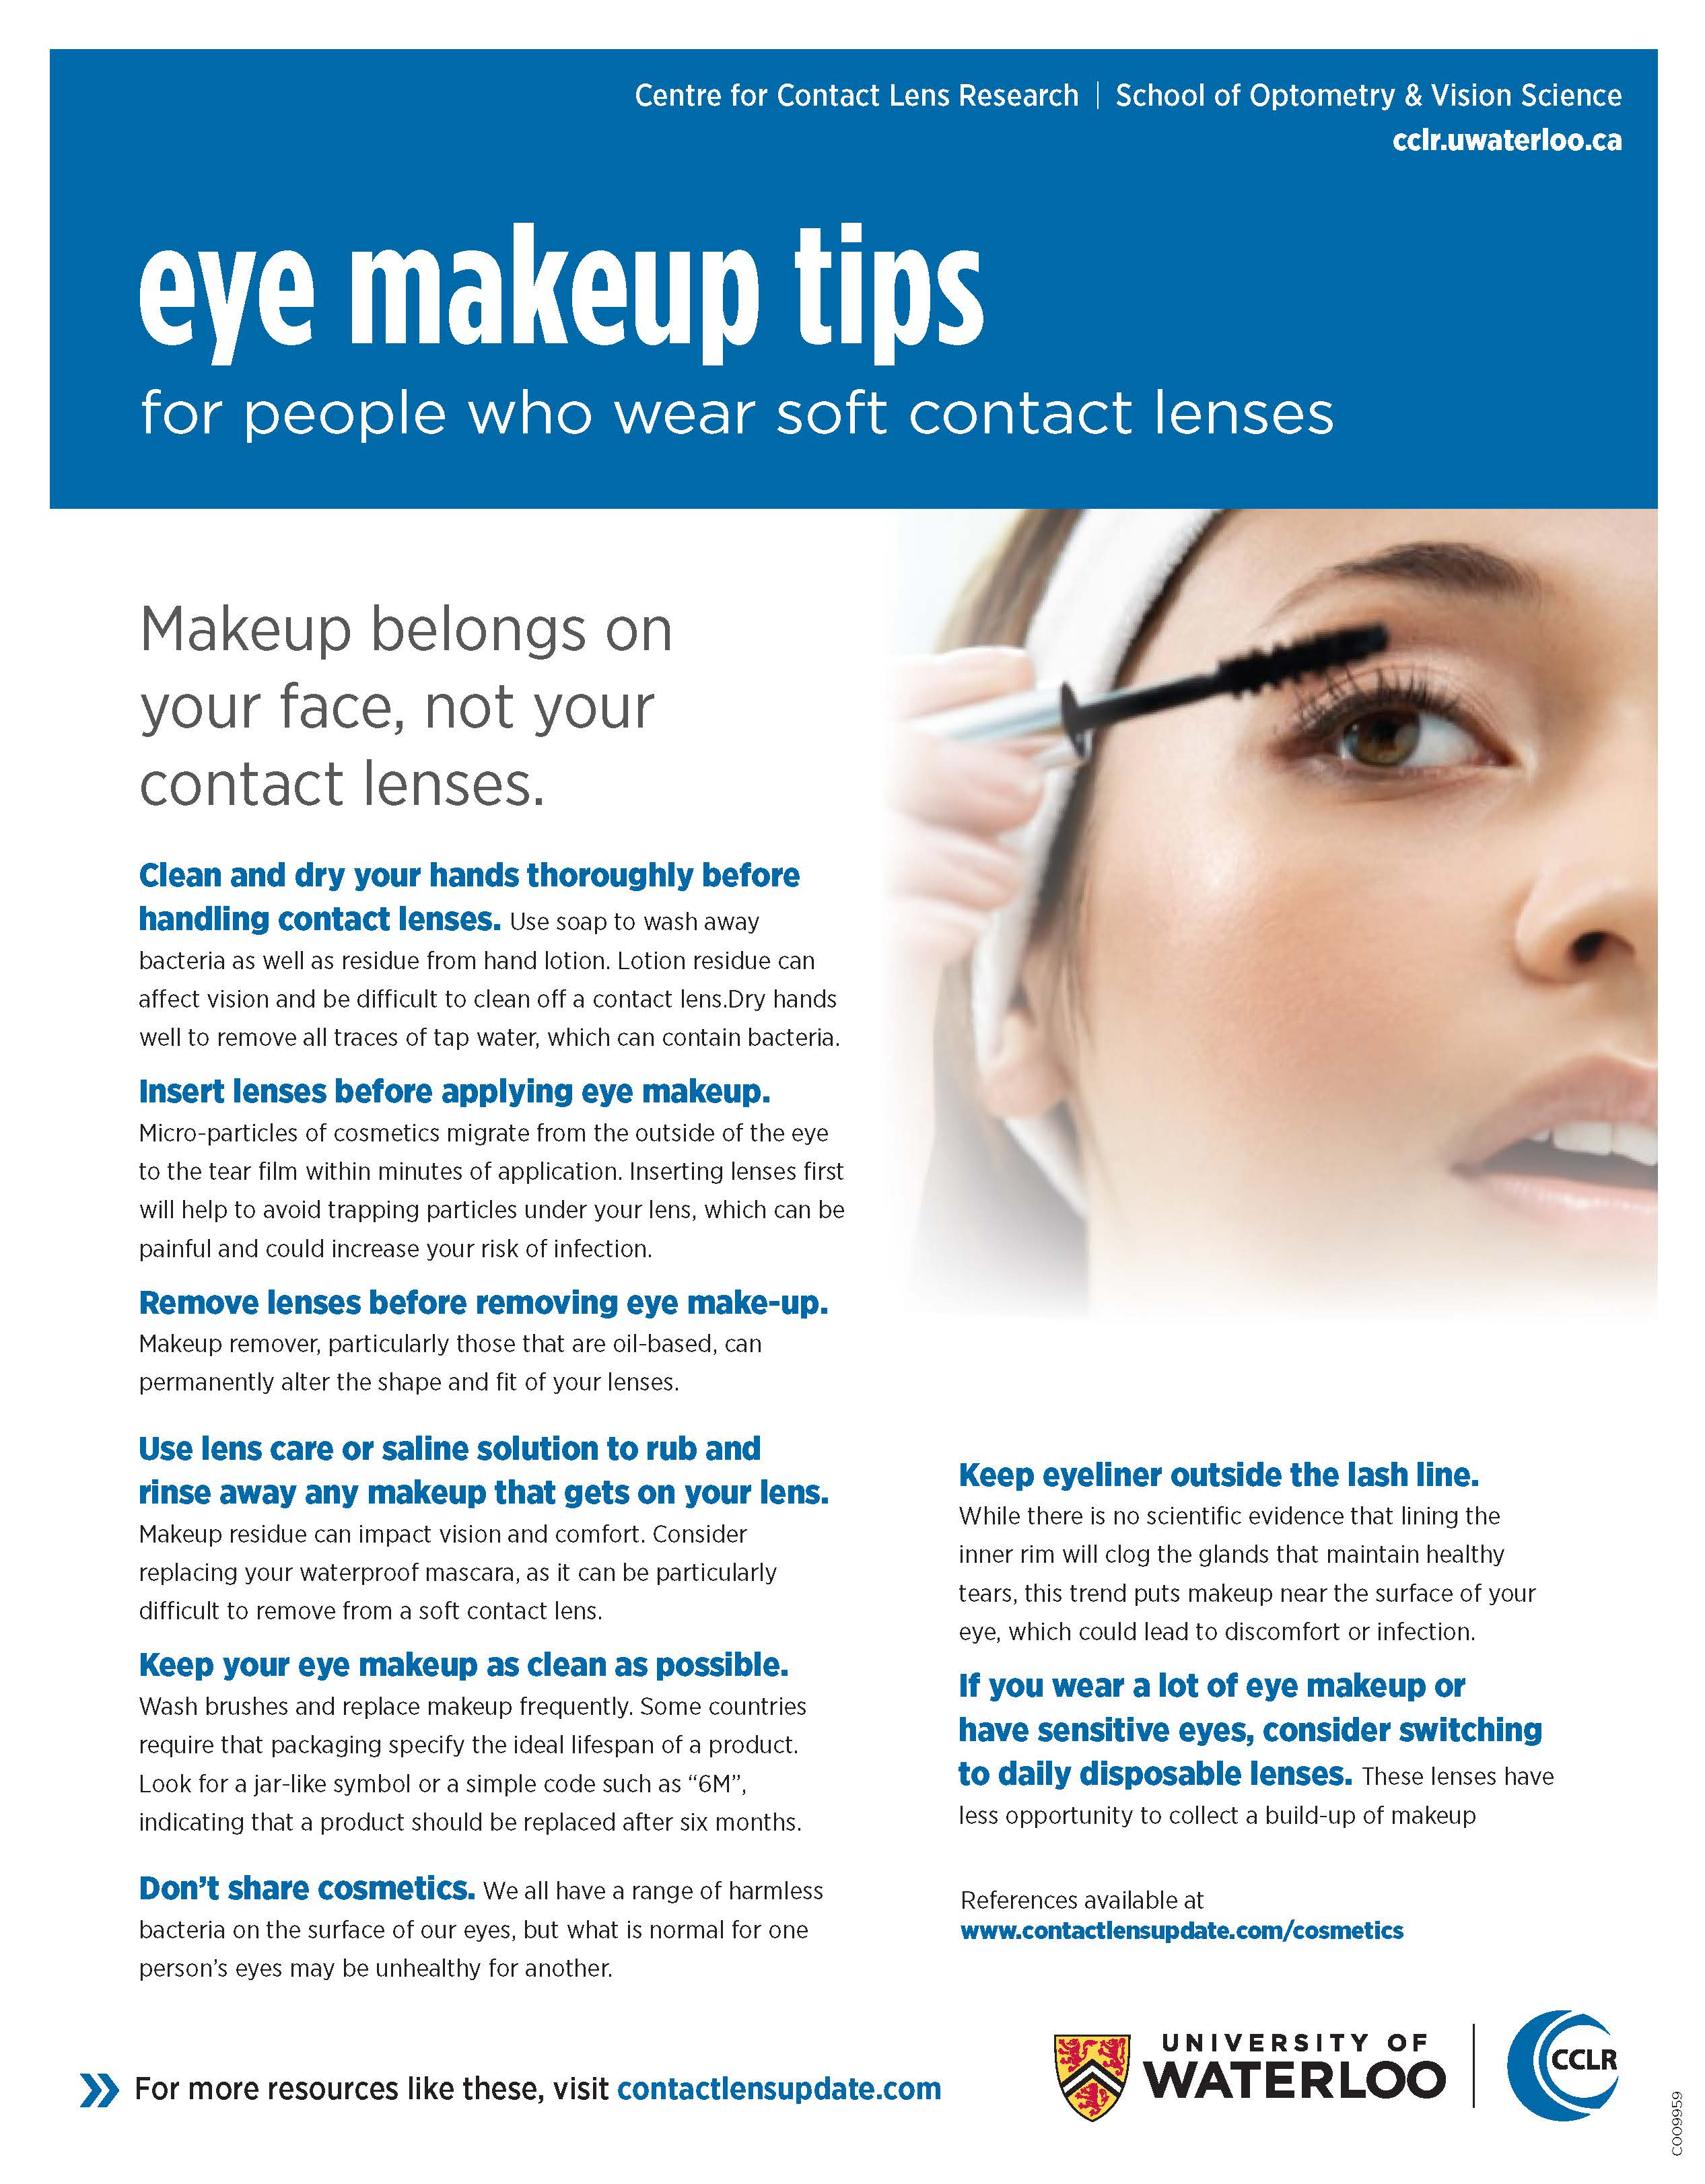 Eye makeup tips for people who wear soft contact lenses